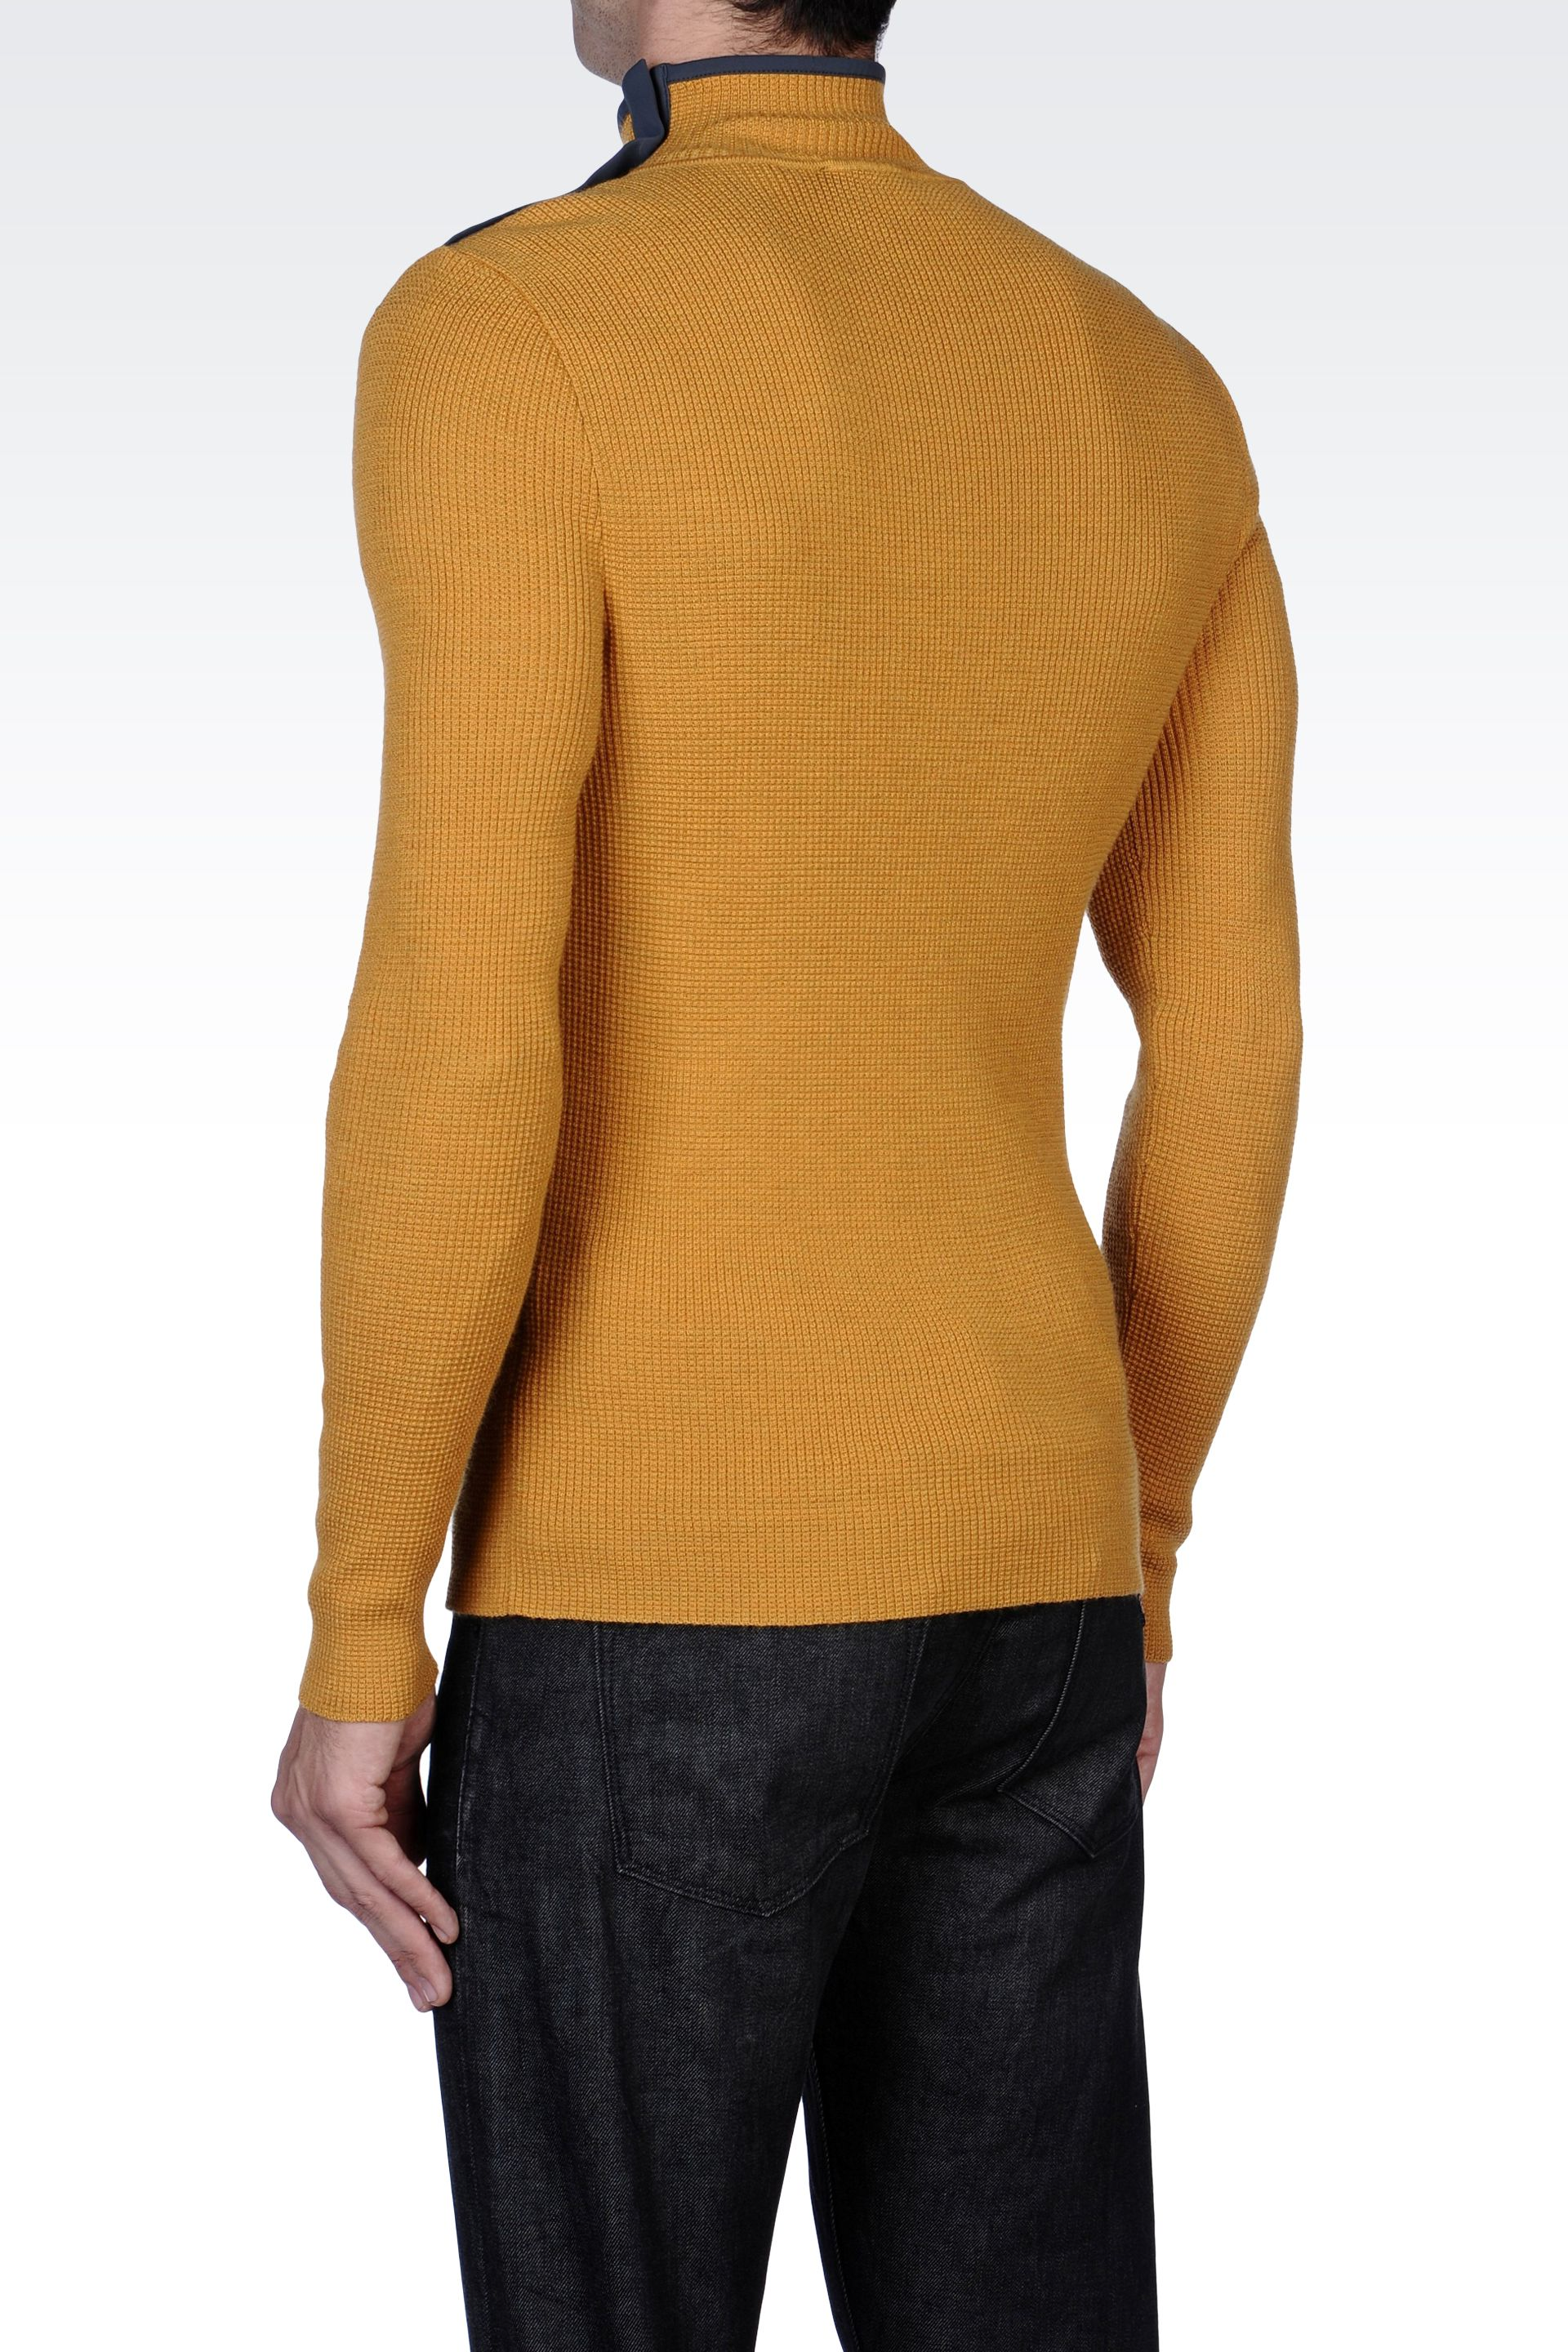 lyst emporio armani wool sweater with zipper detail in yellow for men. Black Bedroom Furniture Sets. Home Design Ideas